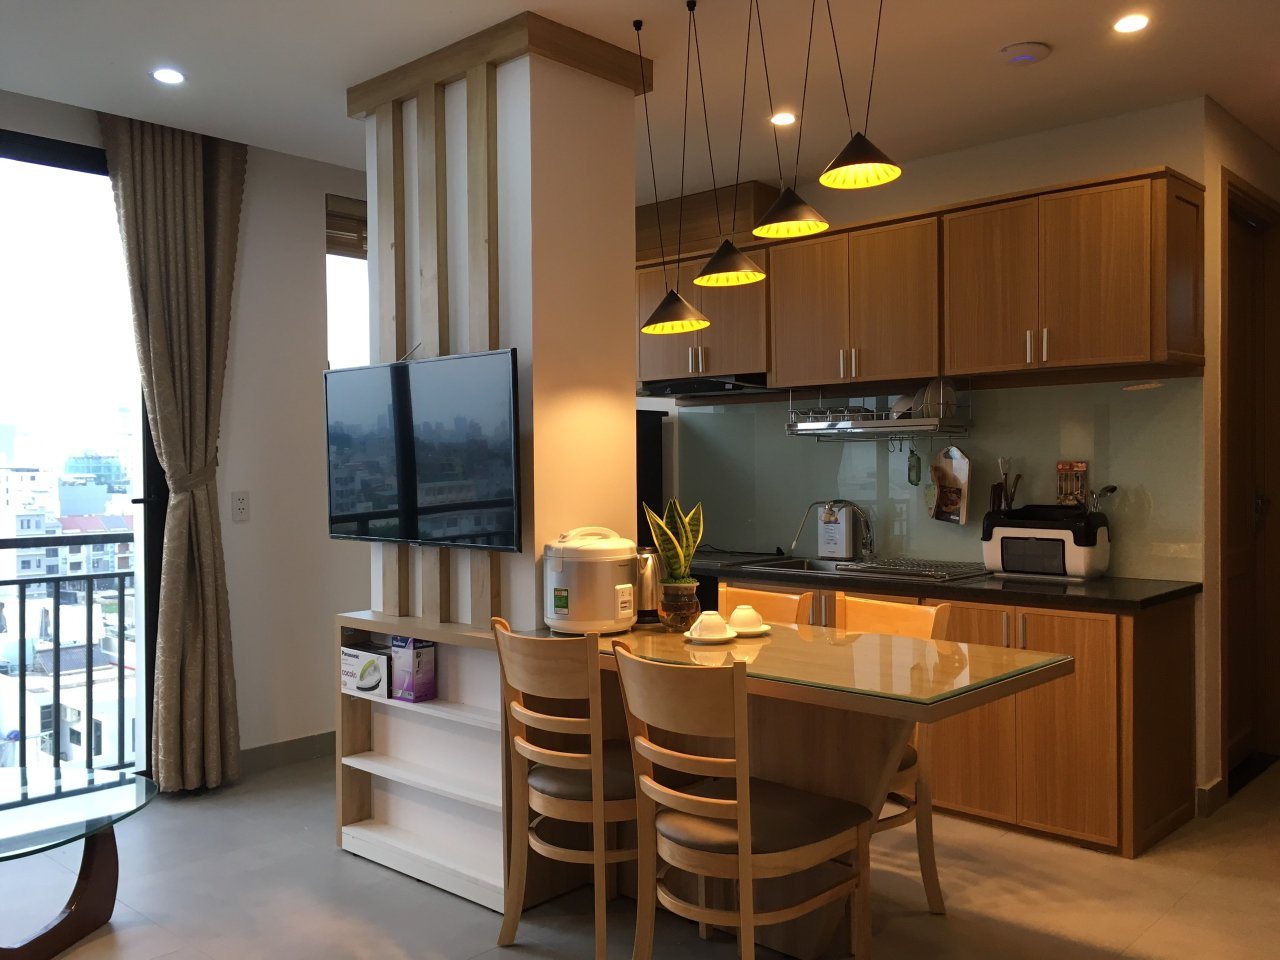 2 Bedroom Apartment For Rent in the heart of the expat area Da Nang